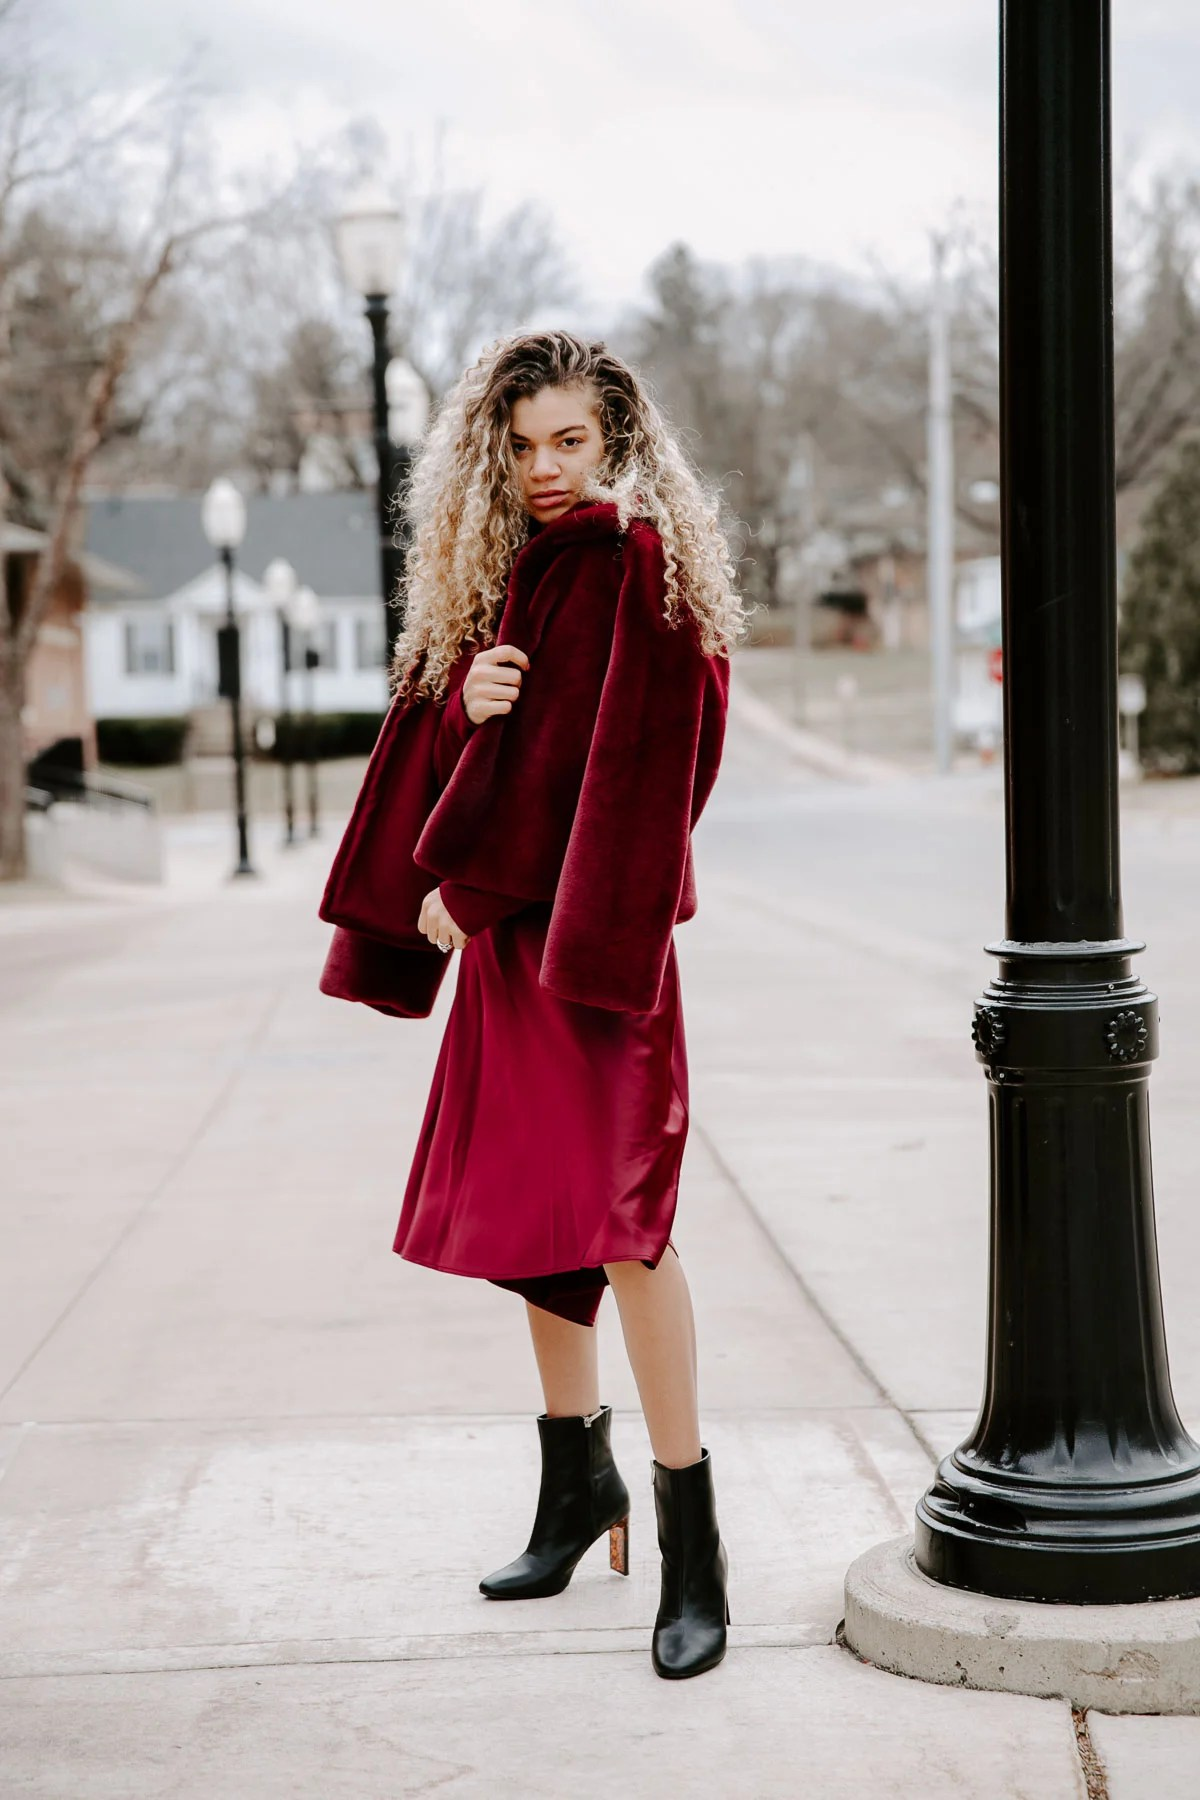 The perfect monochromatic outfit for winter or fall